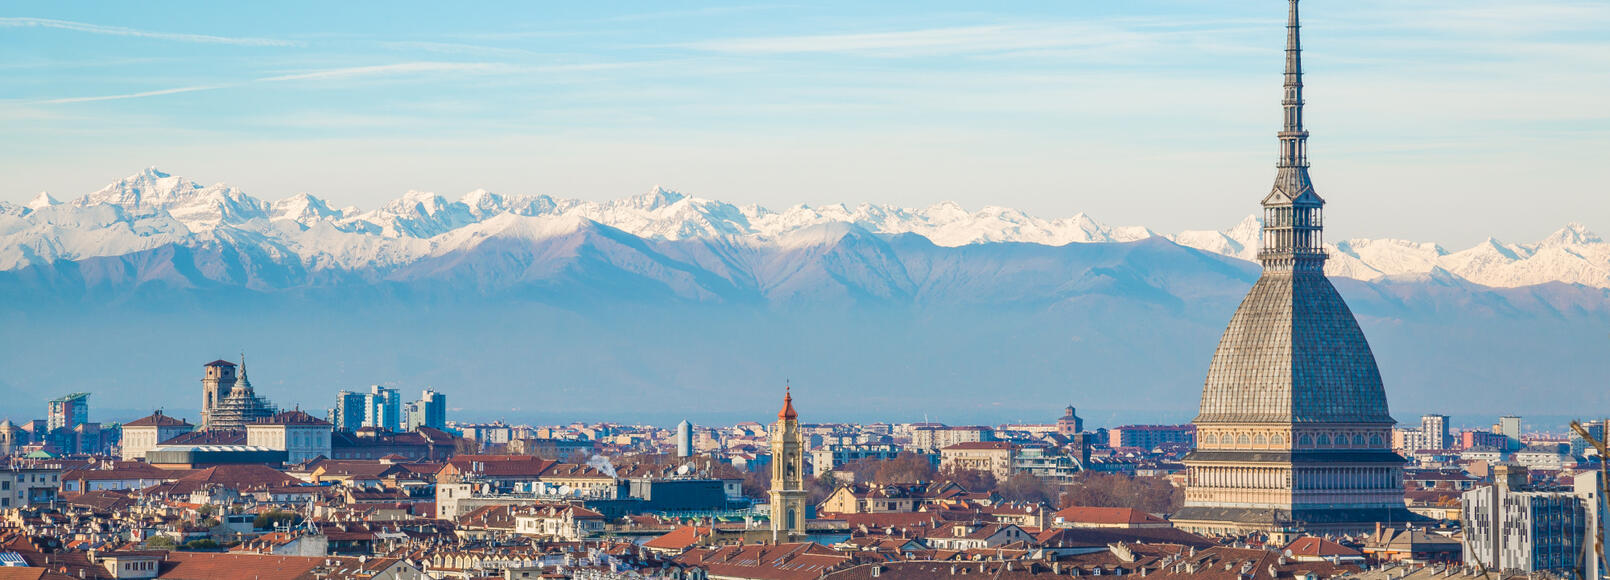 Ten things to see in Turin in one day